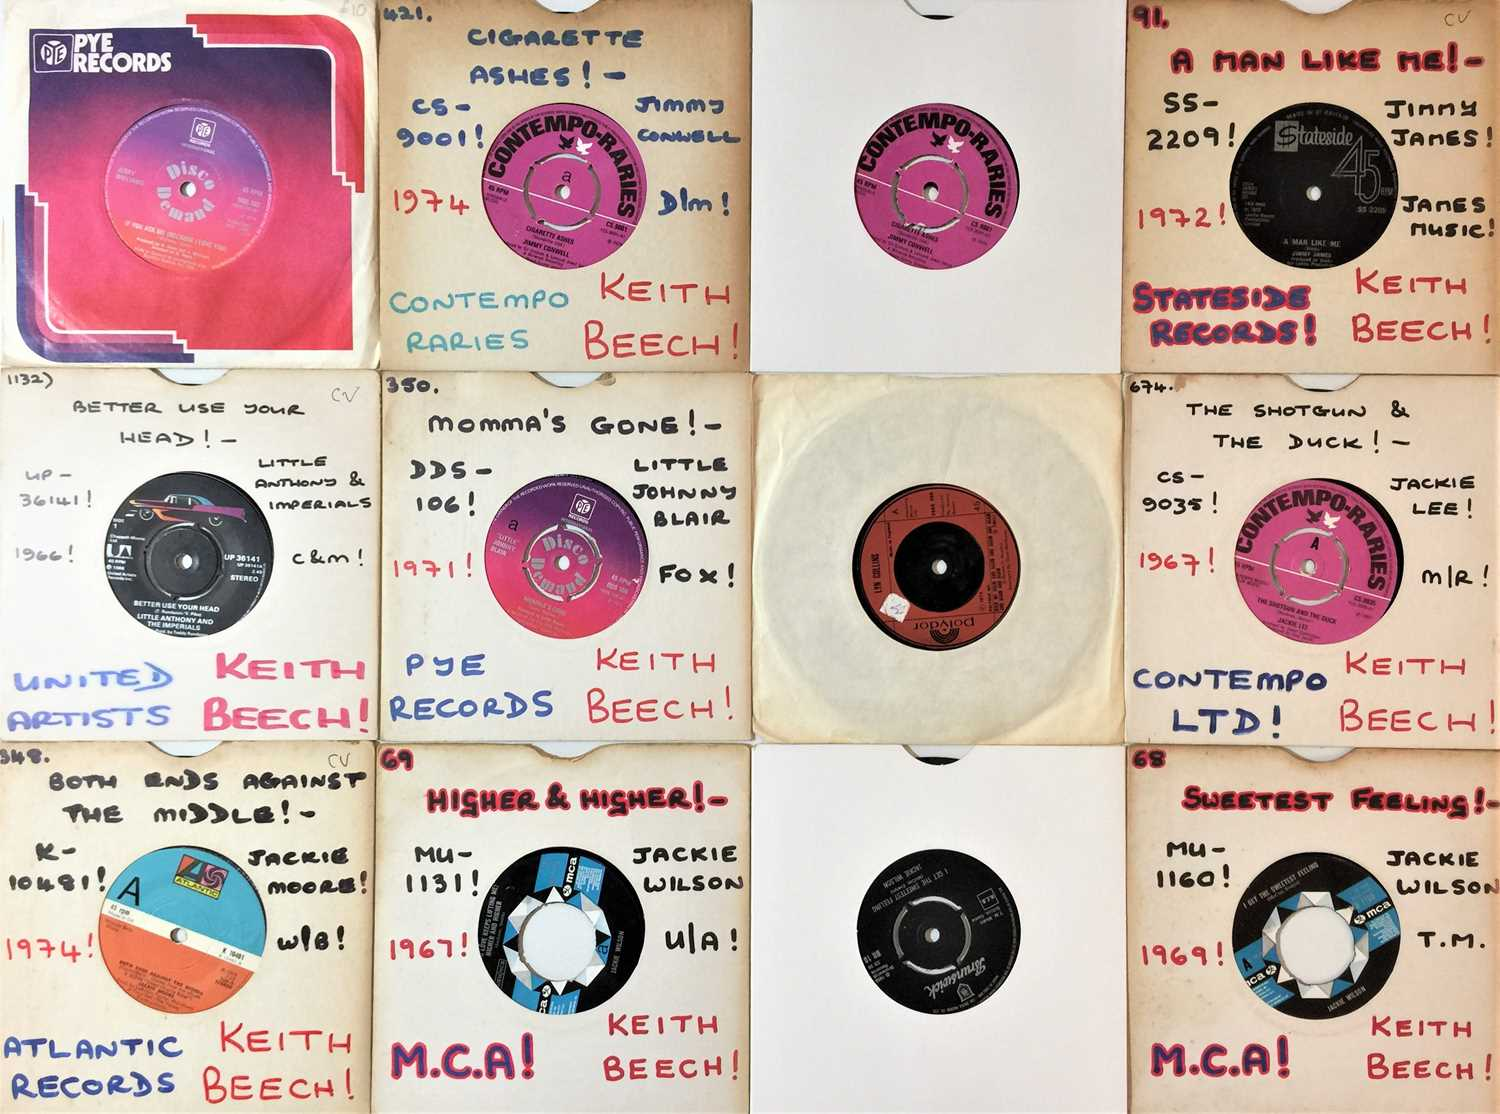 """60s/ 70s SOUL/ NORTHERN/ MOTOWN/ FUNK - 7"""" COLLECTION - Image 3 of 4"""